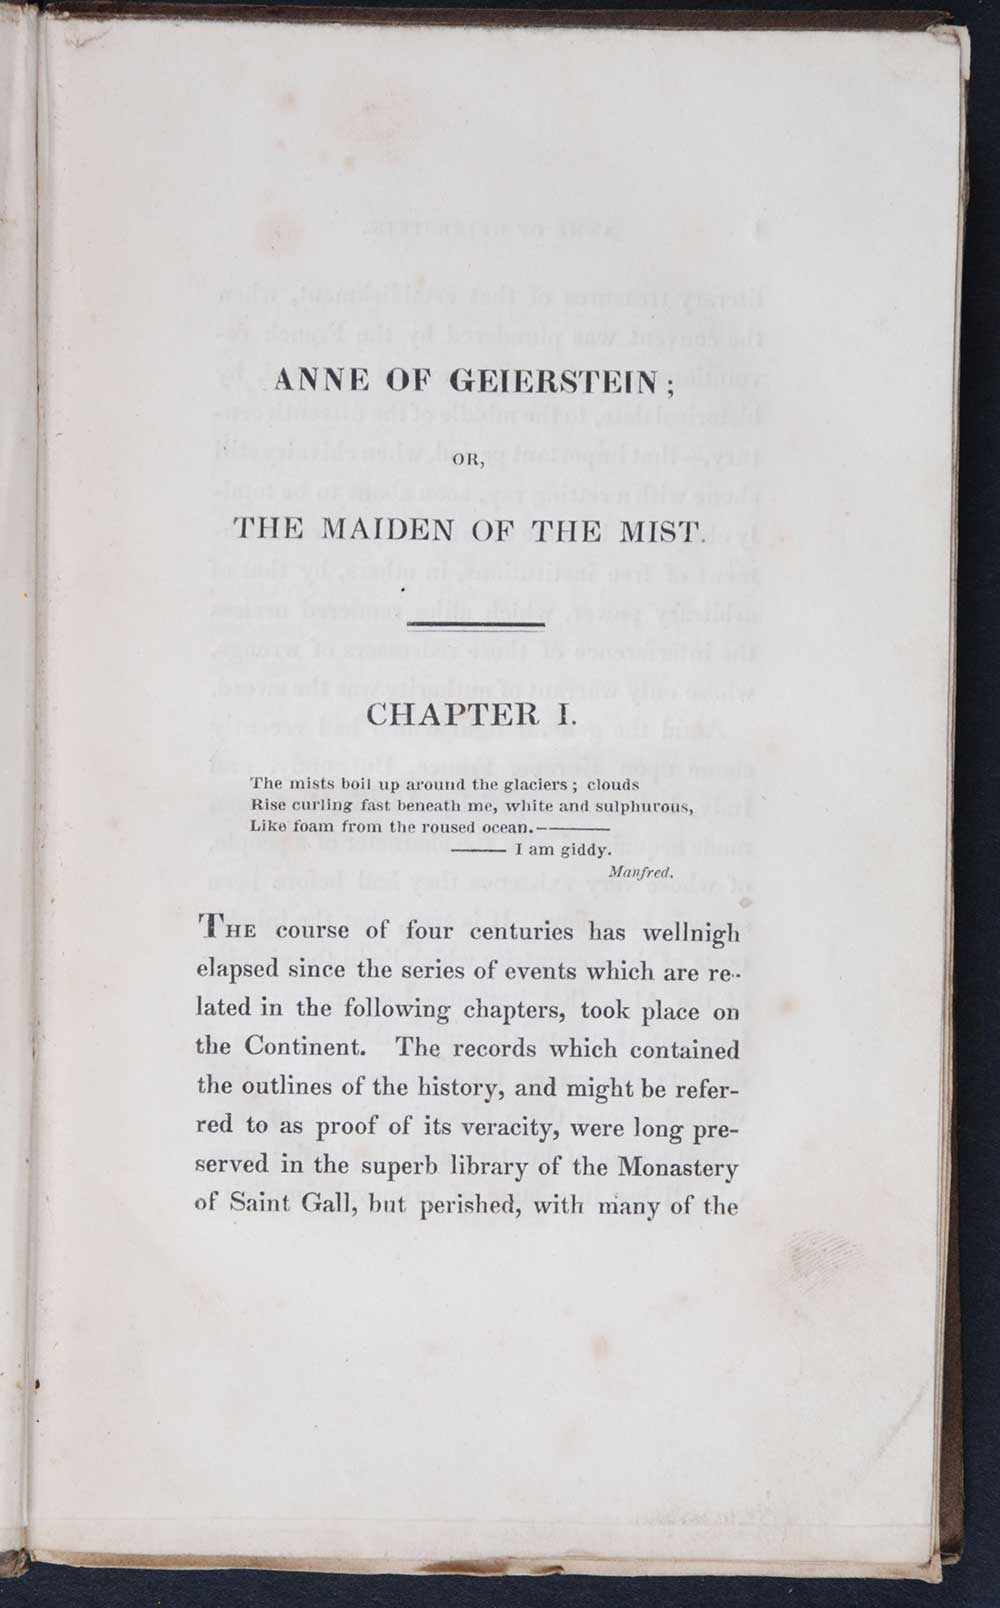 [Sir Walter Scott]. <em>Anne of Geierstein, or, The maiden of the mist.</em> [1st edition]. Edinburgh: Printed for Cadell and Co., Edinburgh; and Simpkin and Marshall, London, 1829. Three volumes; Vol. 1 displayed.